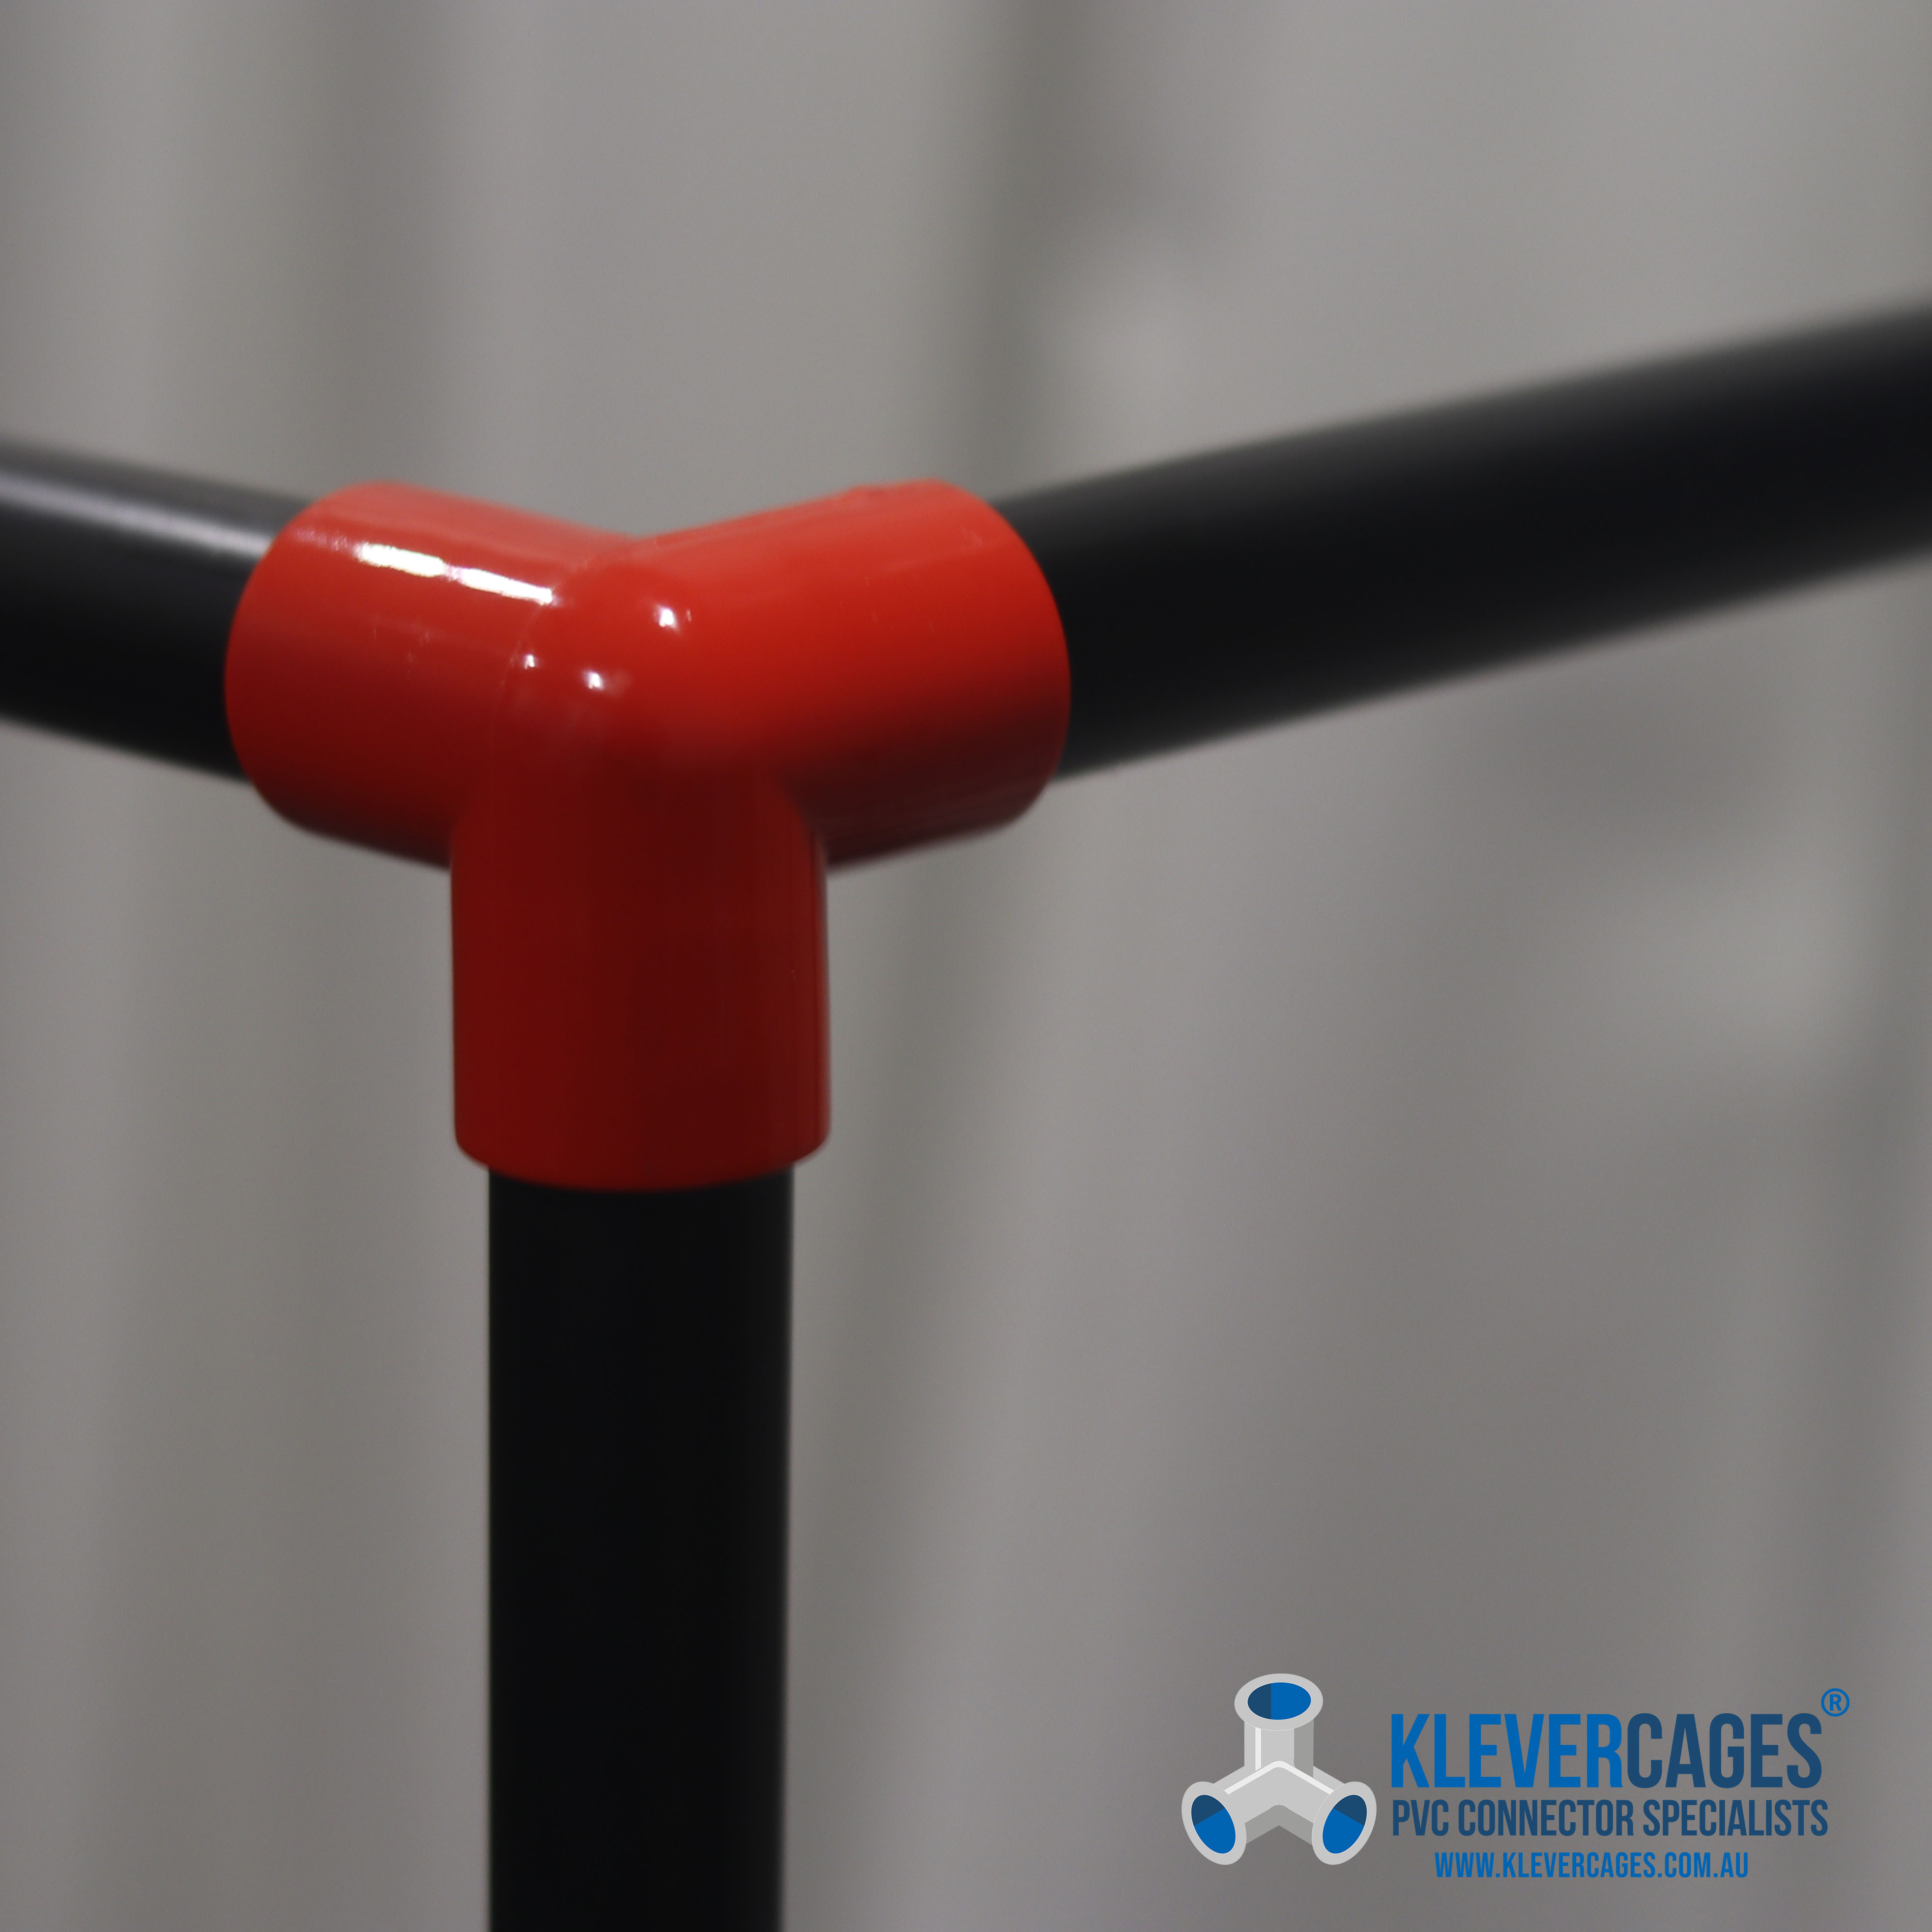 red-connector-with-black-pvc-pipe-from-klever-cages.jpg